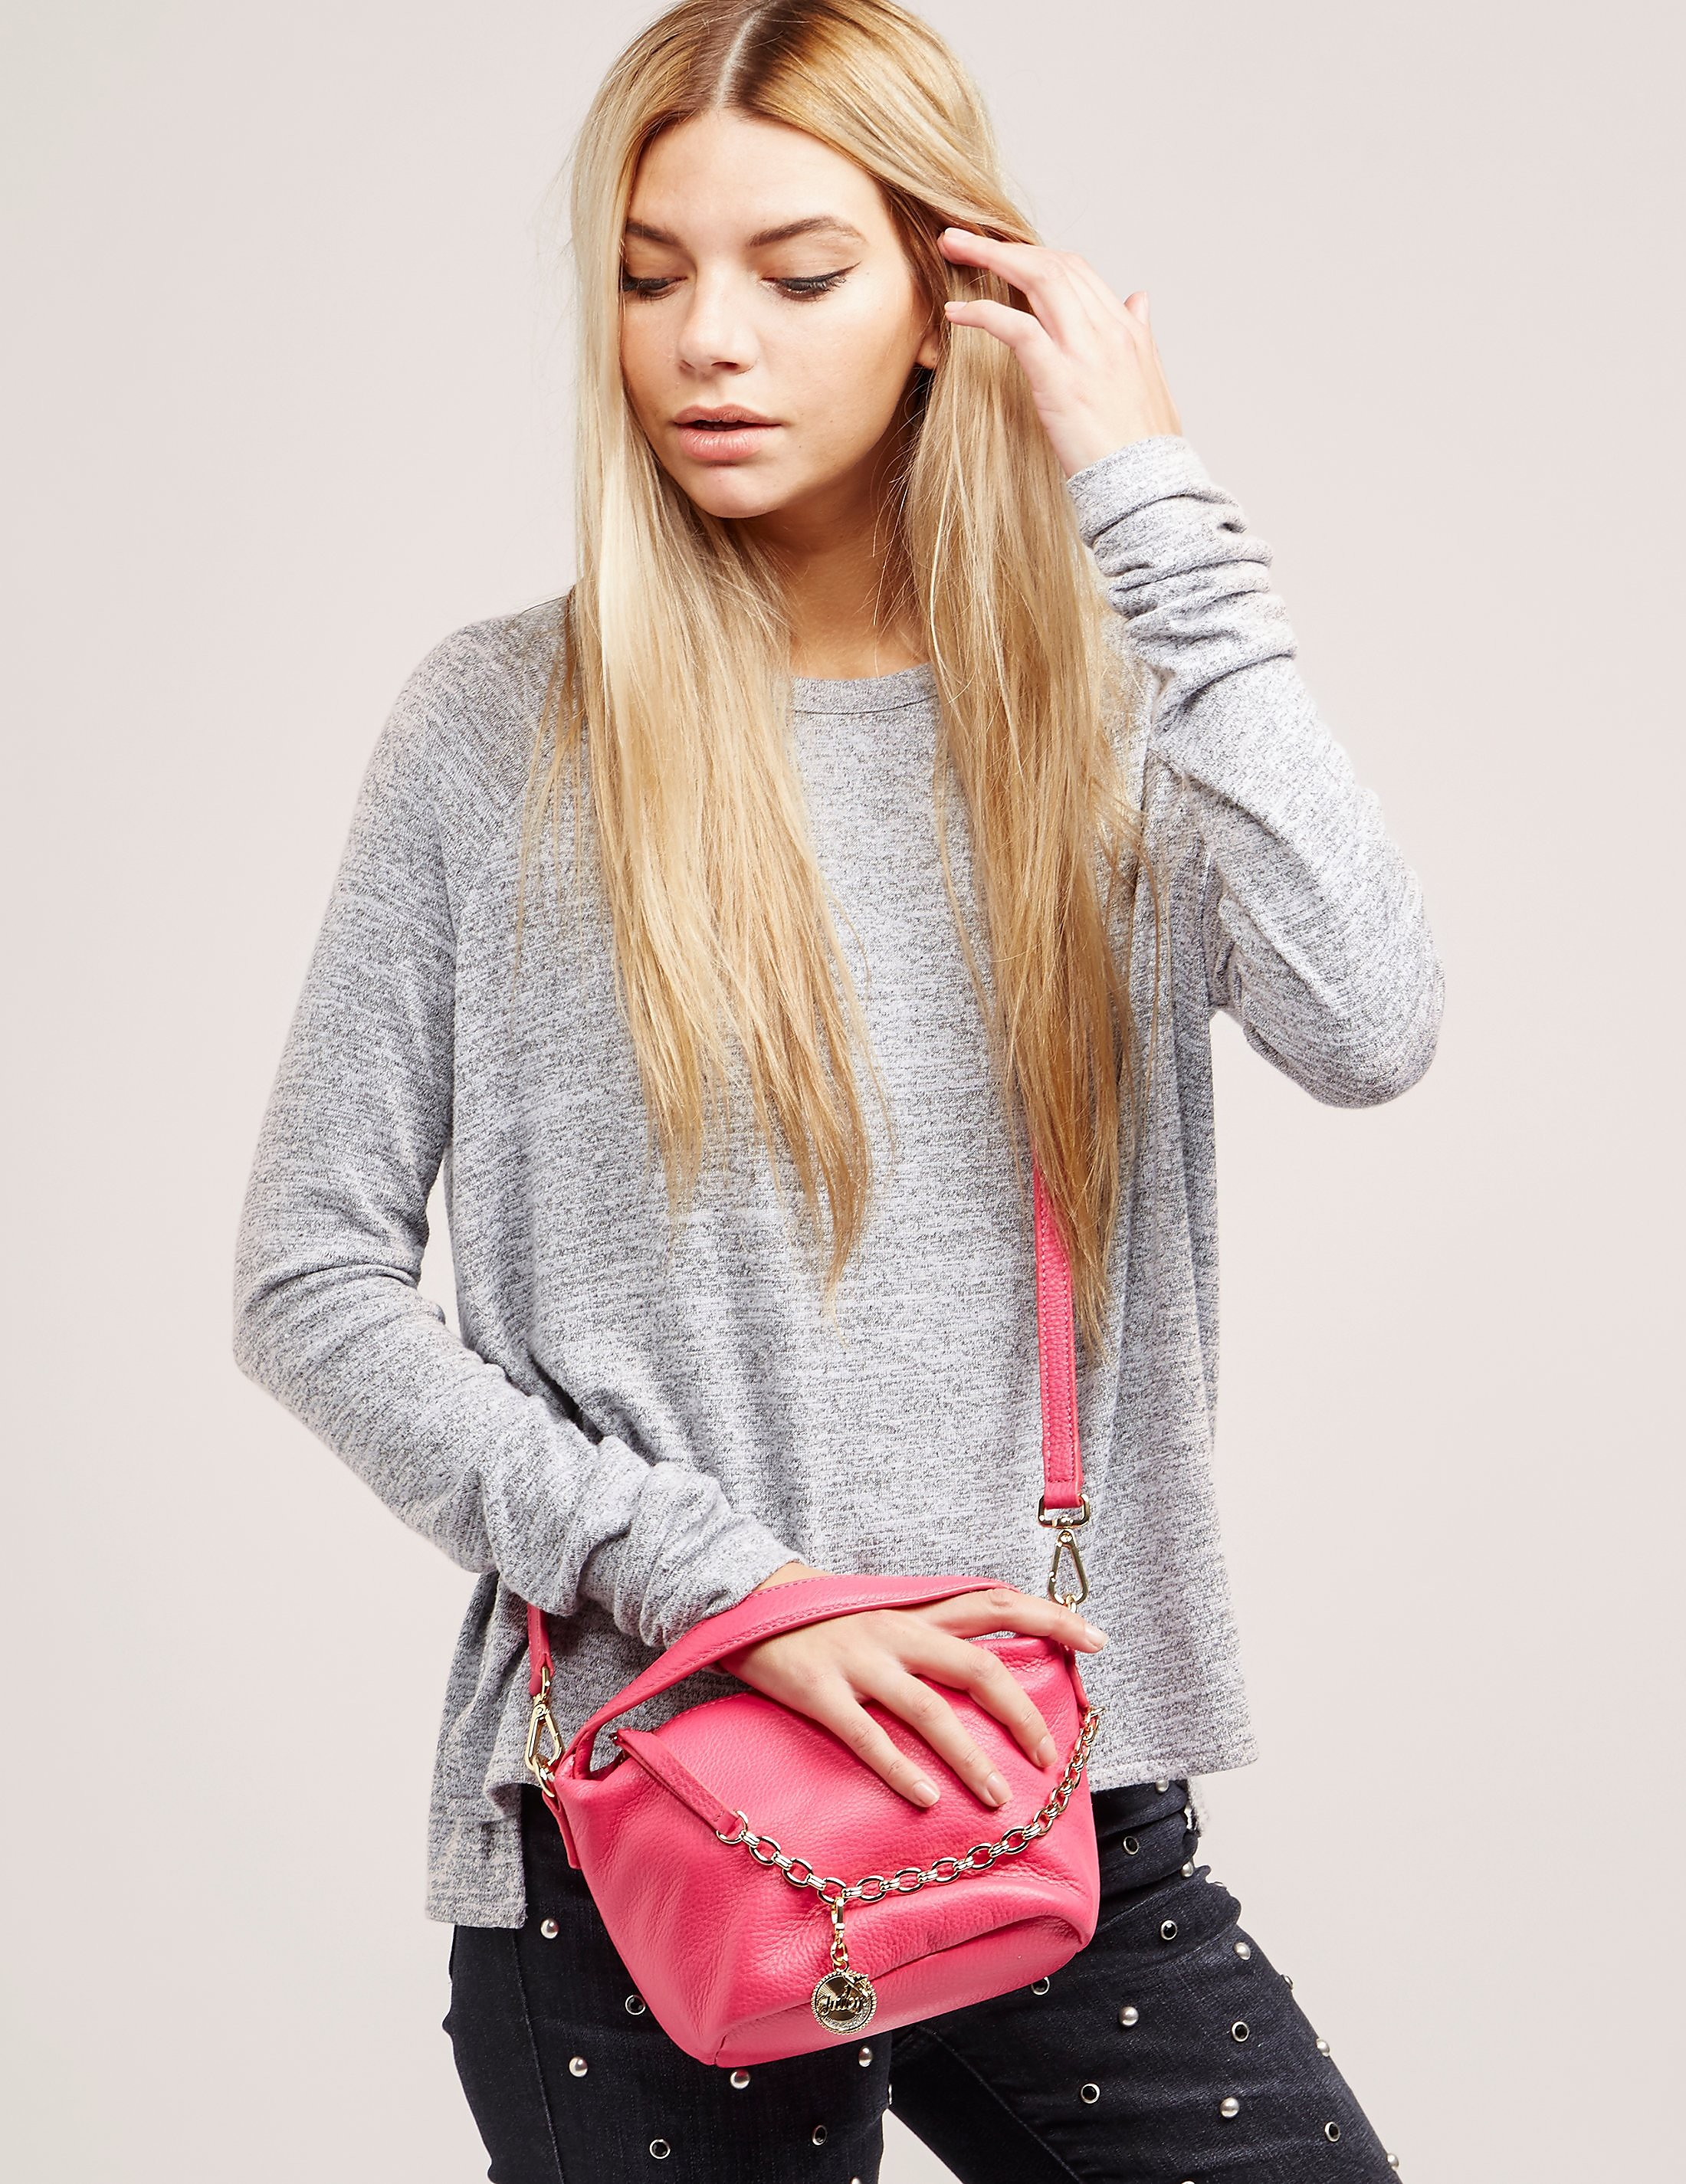 Juicy Couture Charm Crossbody Bag